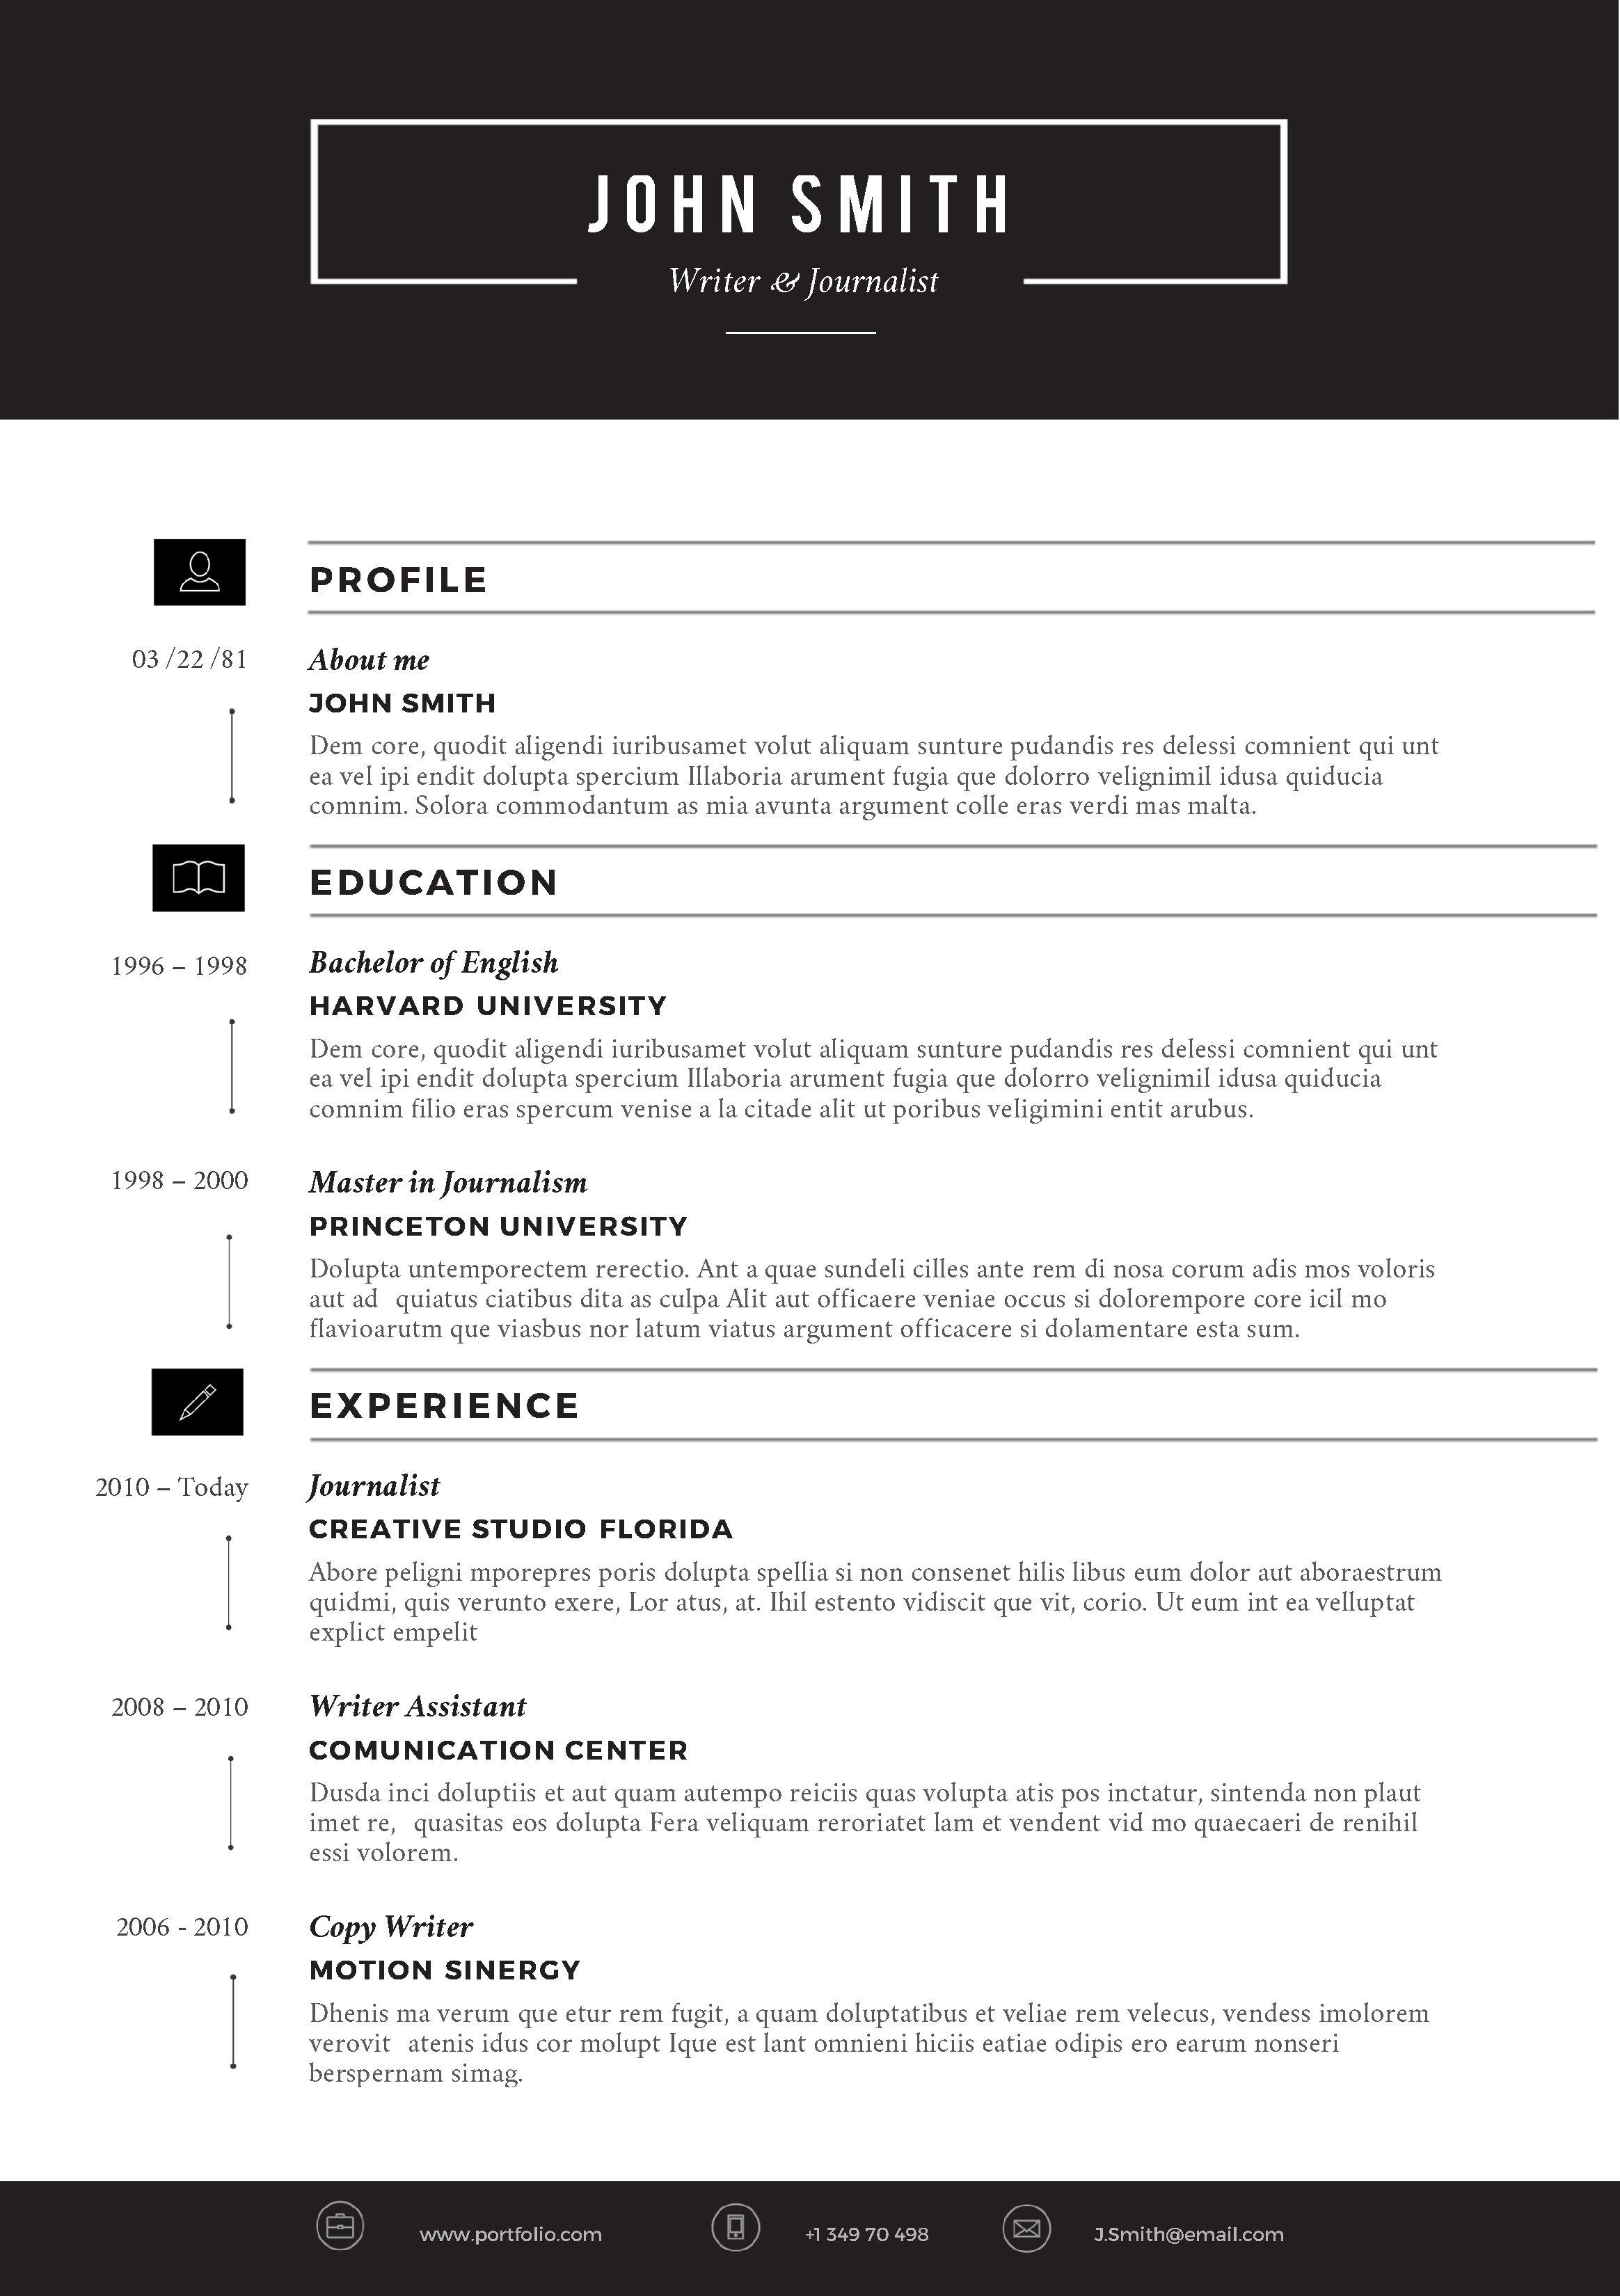 stand out resume templates word all file resume sample stand out resume templates word cvfolio best 10 resume templates for microsoft word sleek resume template